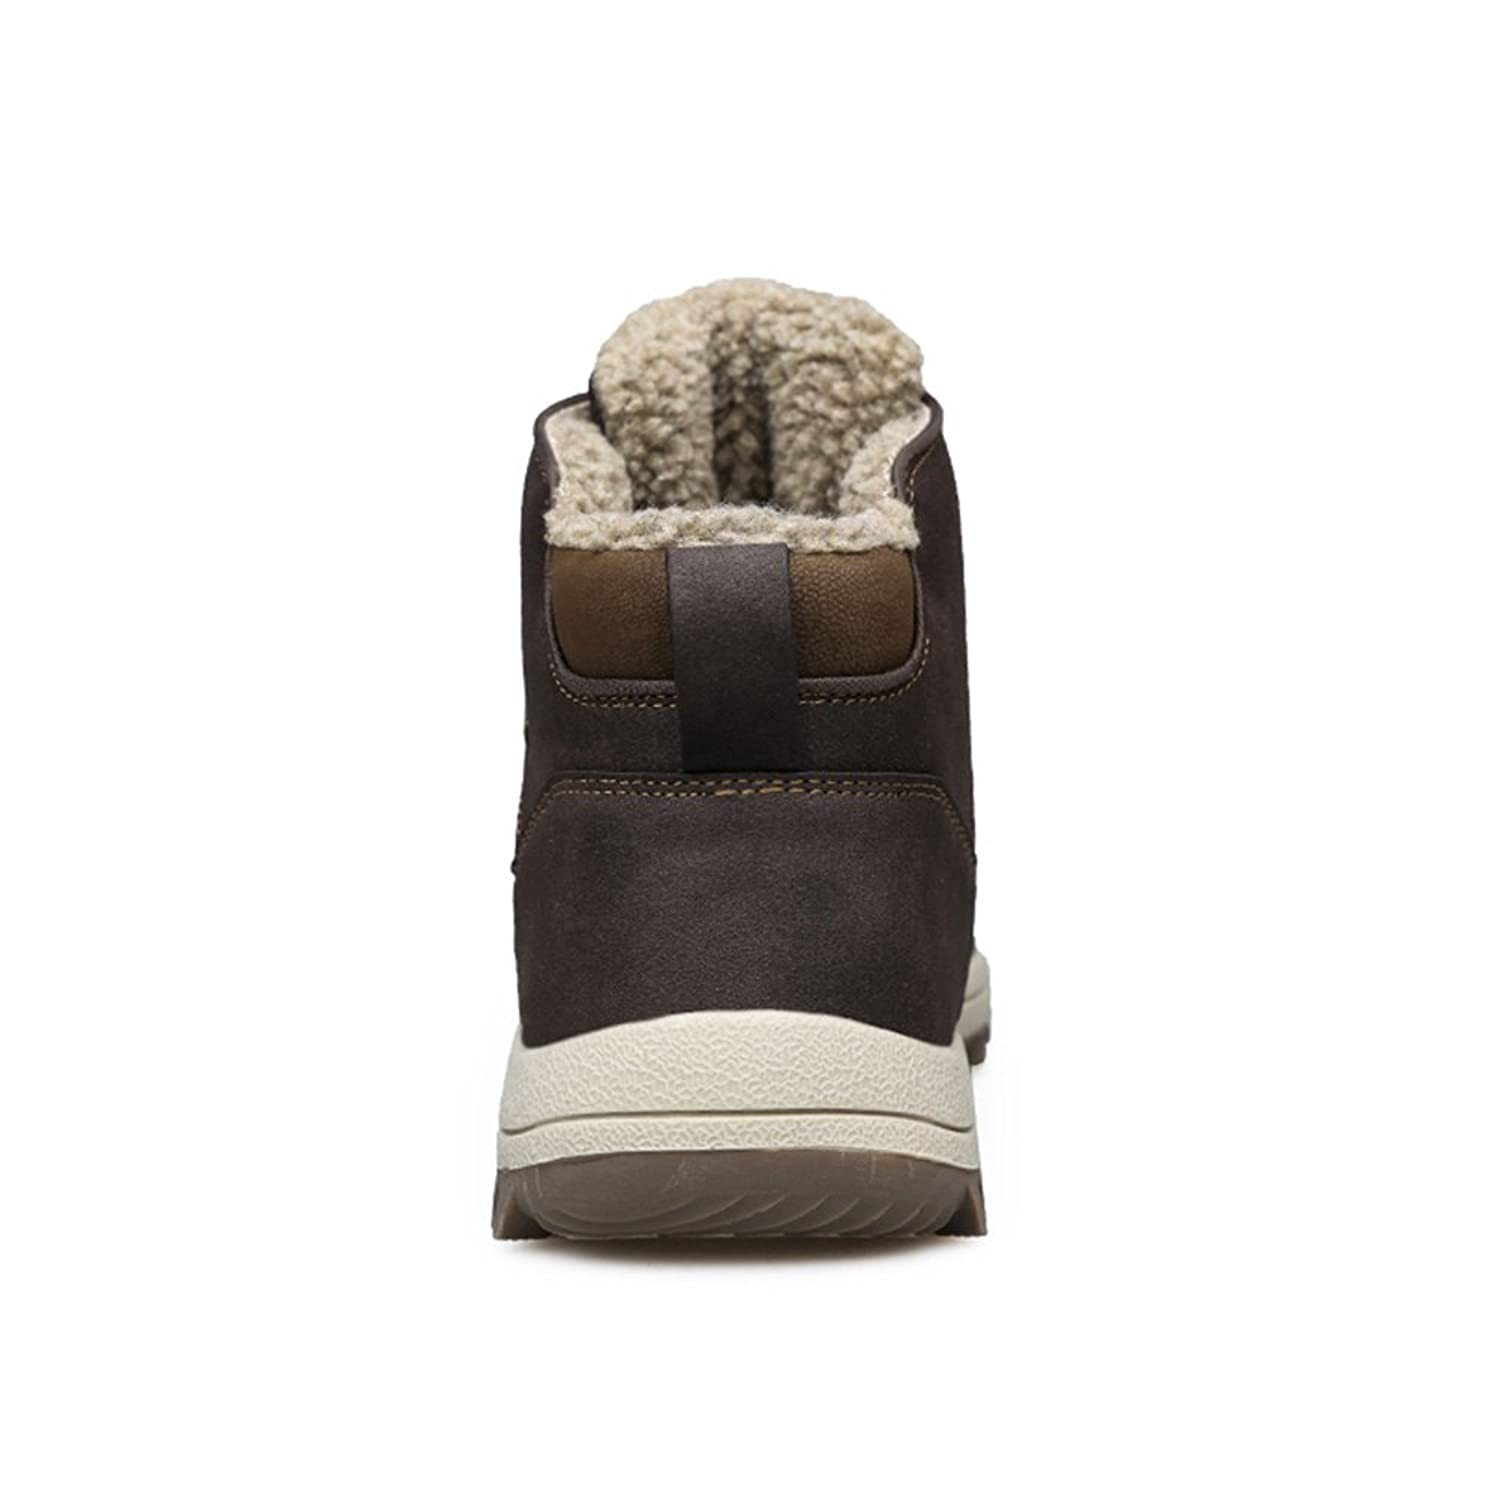 SUNROLAN SLL-DLZ-572070-zong-43 Men's Microfiber Leather Snow Boots with Fur  Lining Ankle Top Winter Shoes US9.5: Amazon.ca: Shoes & Handbags